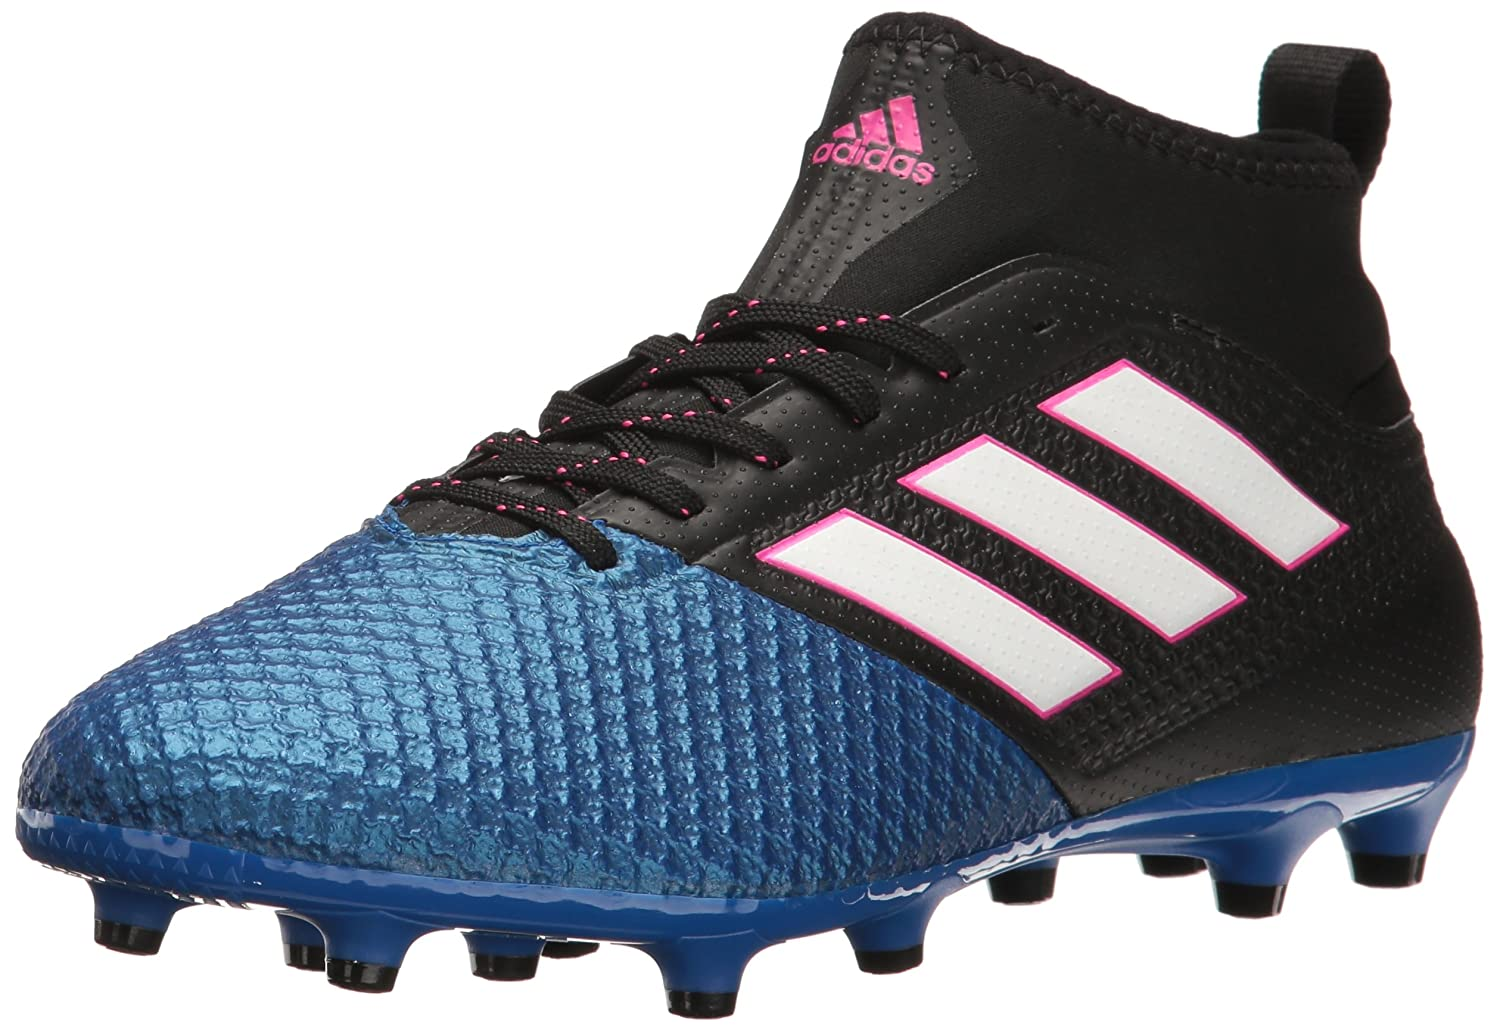 Amazon Best Sellers: Best Men's Soccer Shoes